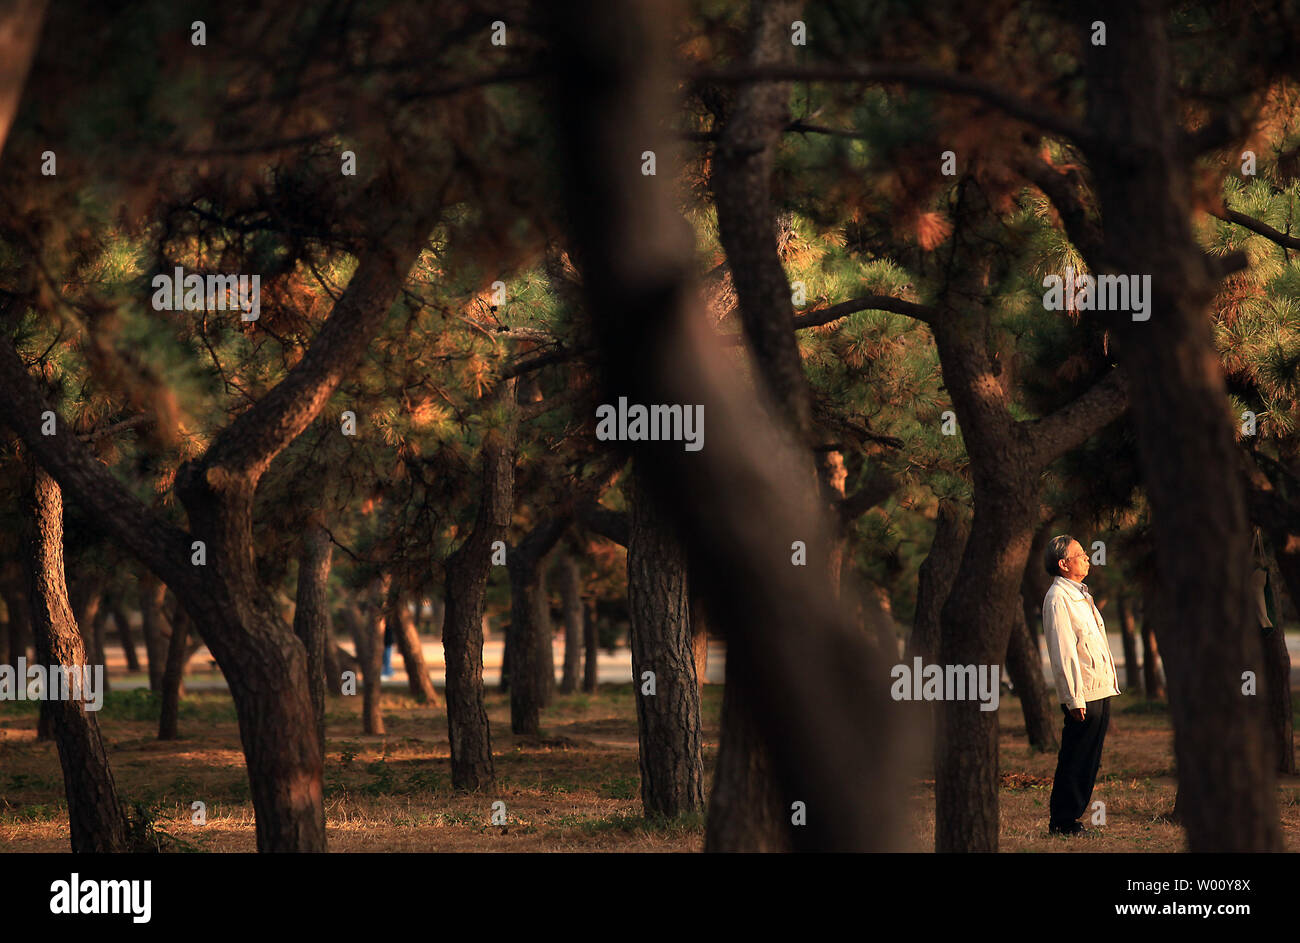 Qigong Exercise Stock Photos & Qigong Exercise Stock Images